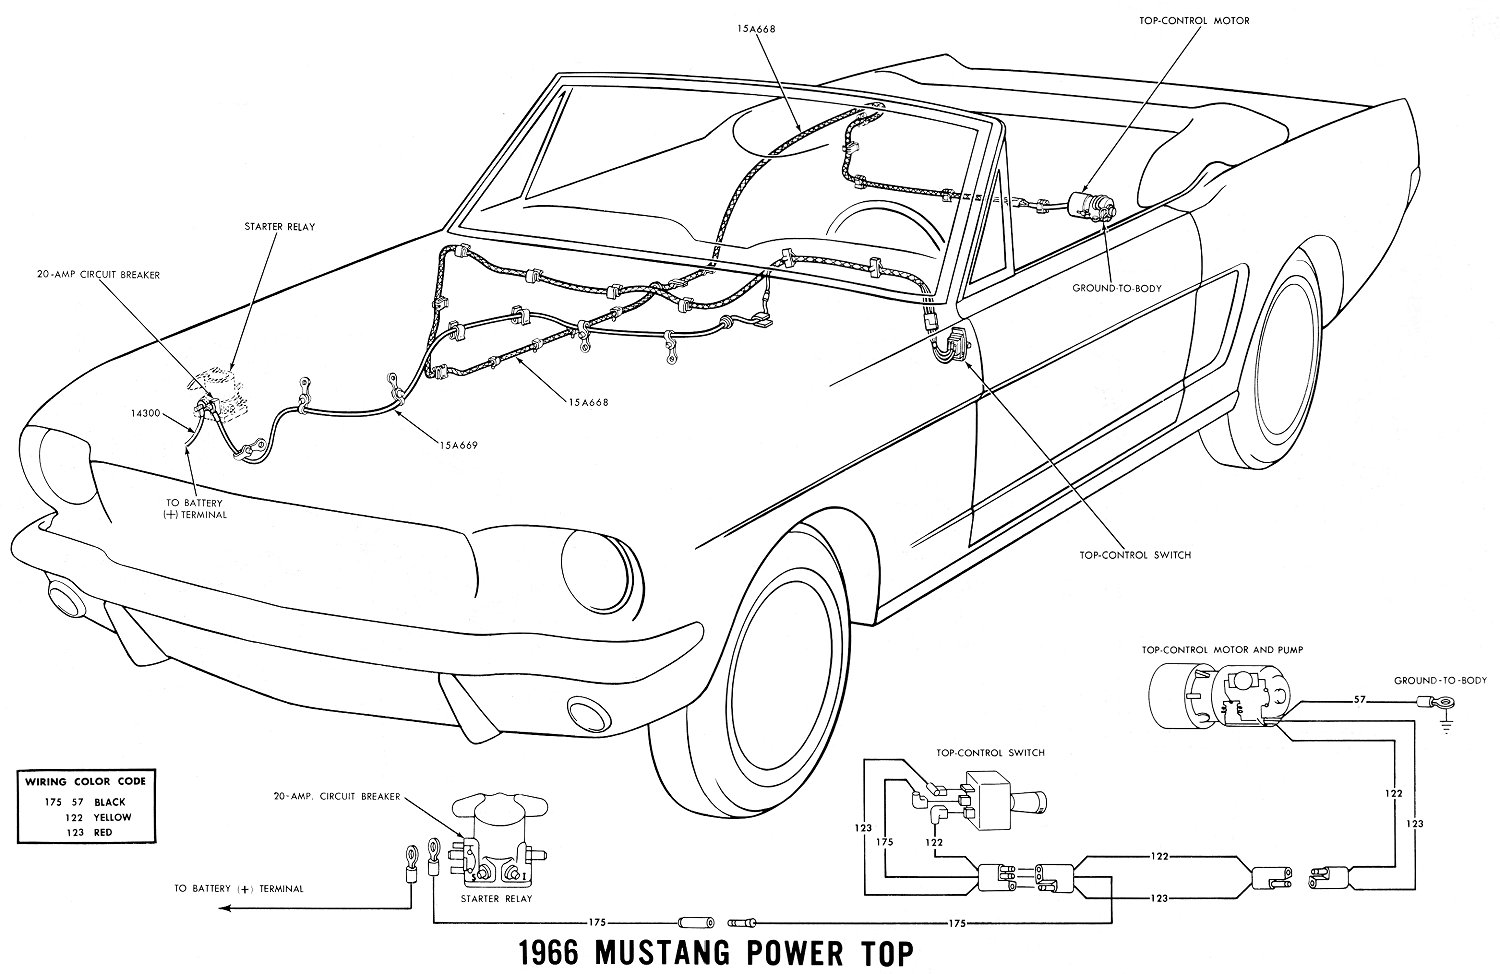 Vintage mustang wiring diagrams 66 power convertible top details publicscrutiny Images